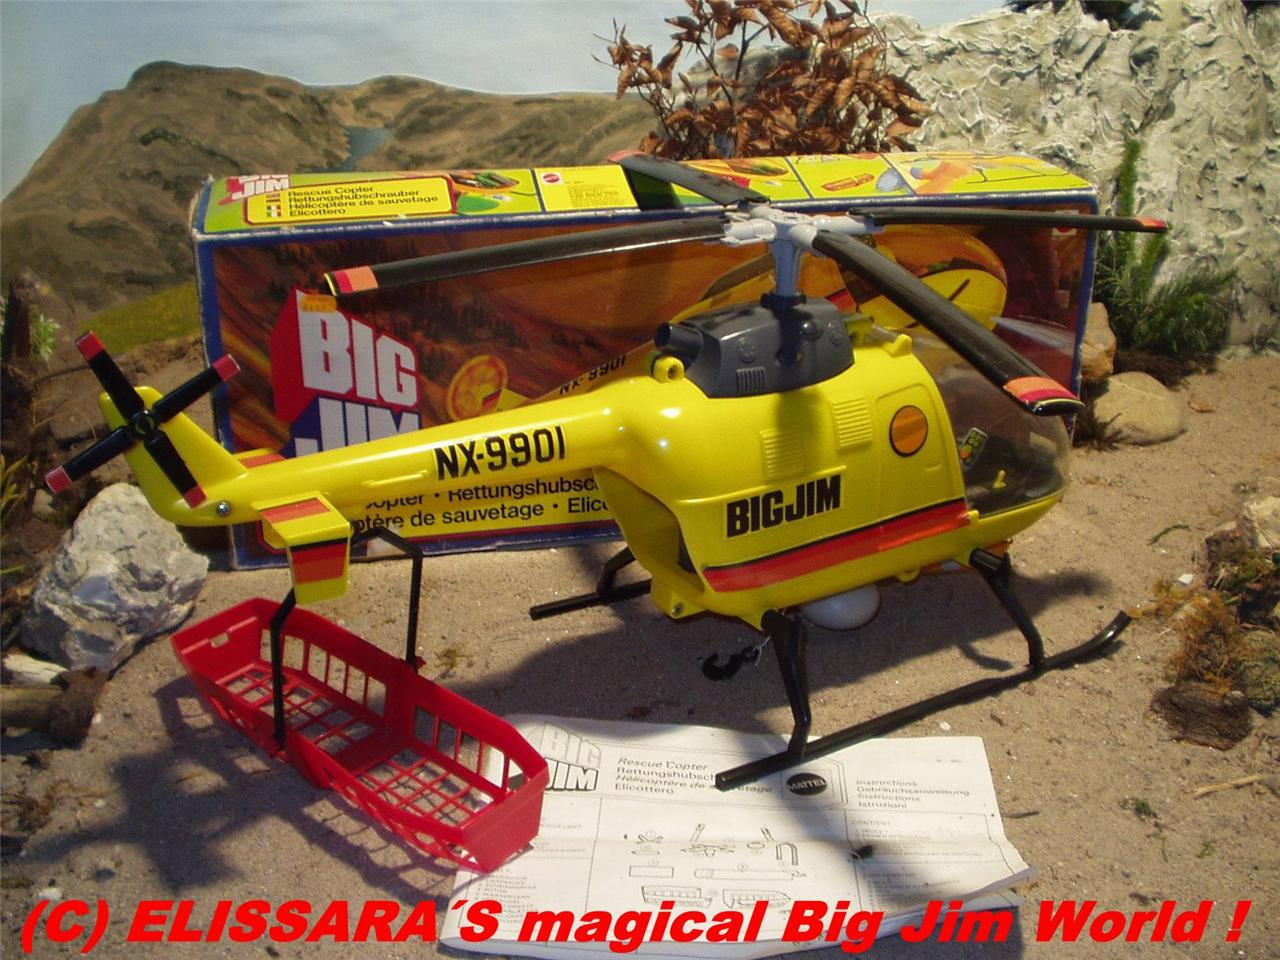 big rc helicopter with 400245644585 on Eh Ek E033 furthermore 32428021110 likewise 4 also Blade Red Bull Bo 105 Cb 130 X Bnf furthermore Giant Scale Rc Airplanes.